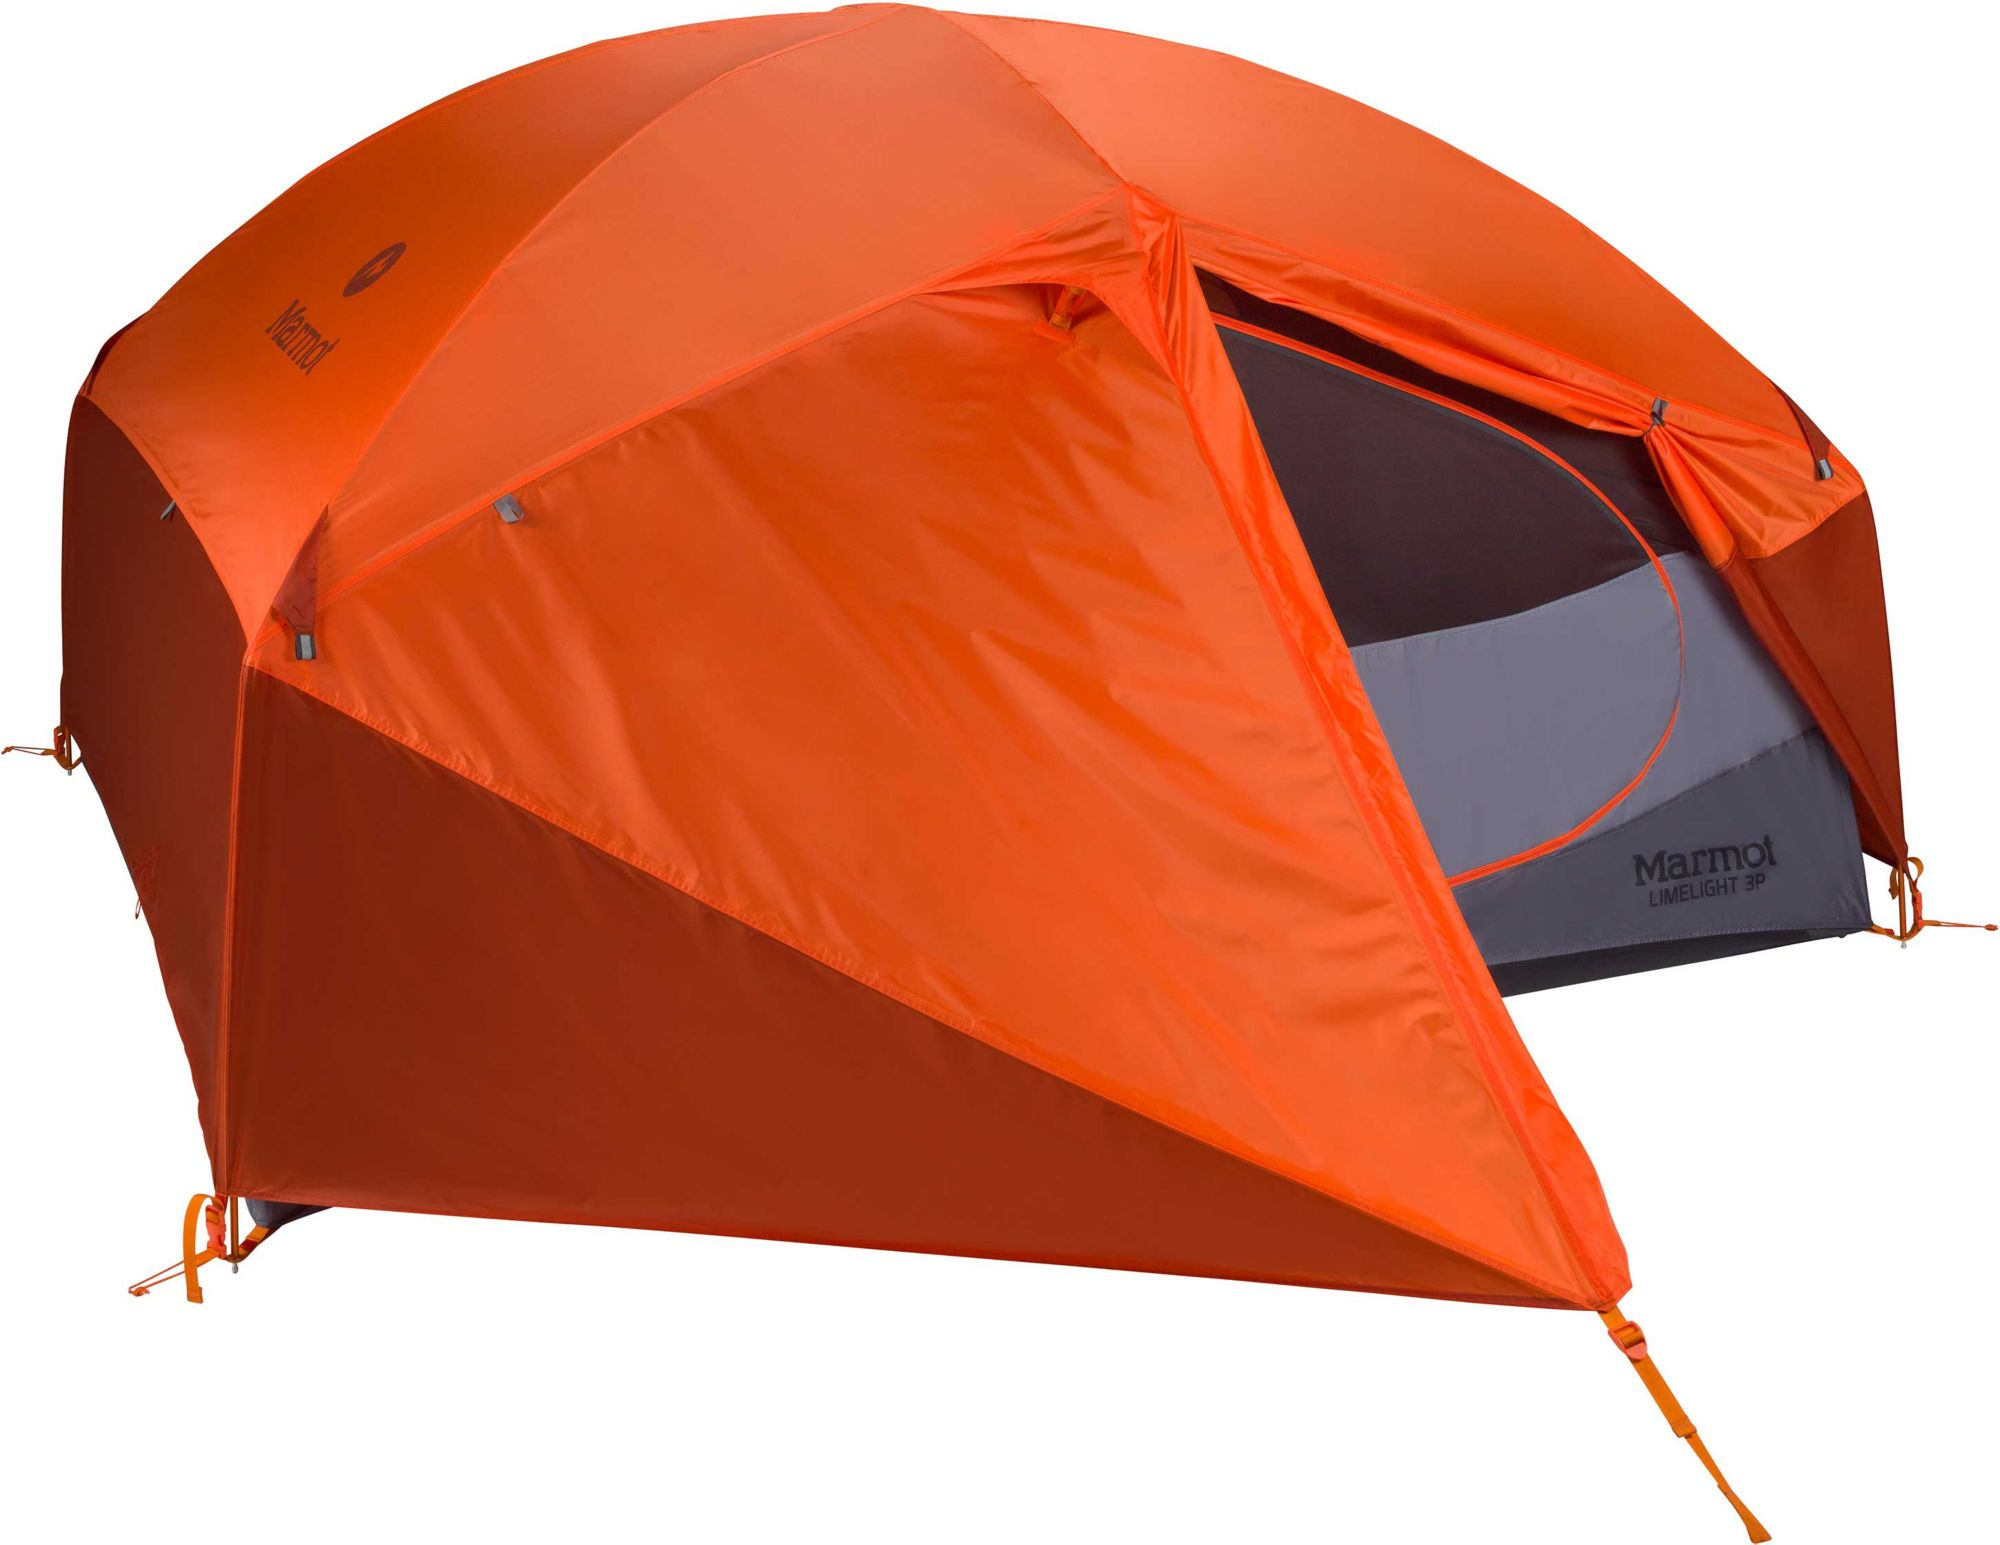 1  sc 1 th 197 & Marmot Limelight Cabin 3 Person Tent | DICKu0027S Sporting Goods